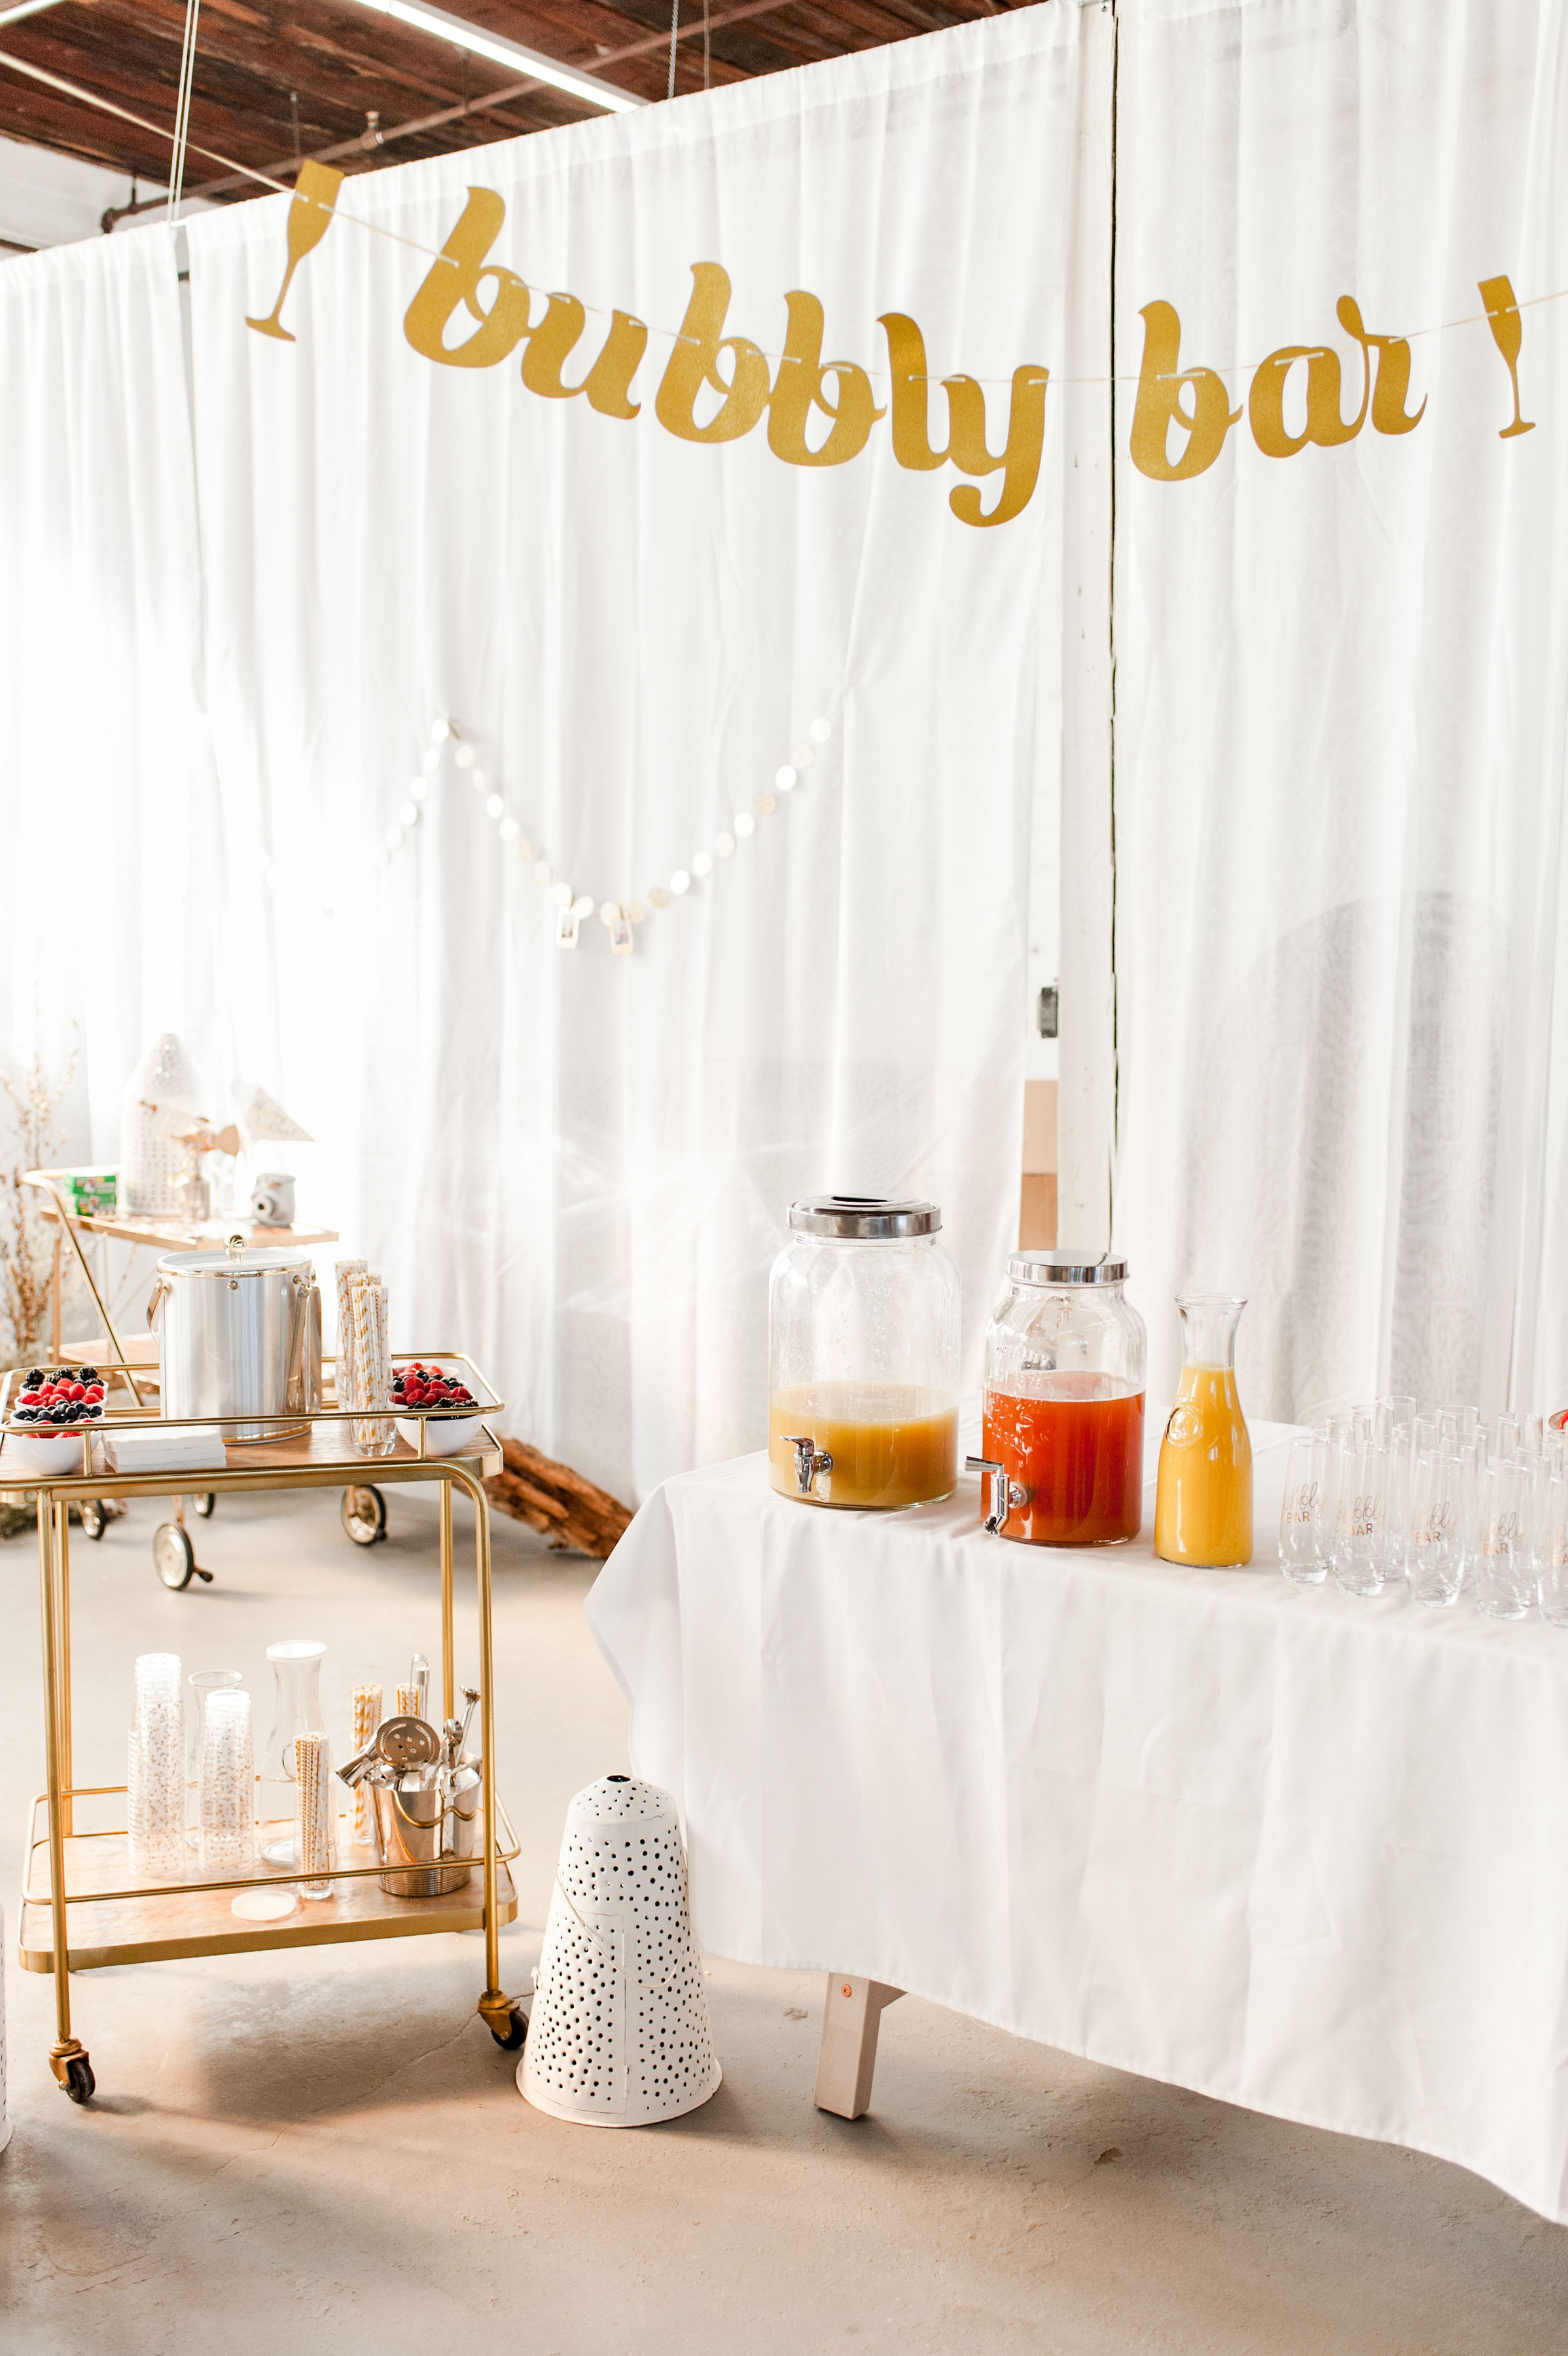 Baby Showers at the tannery loft.JPG